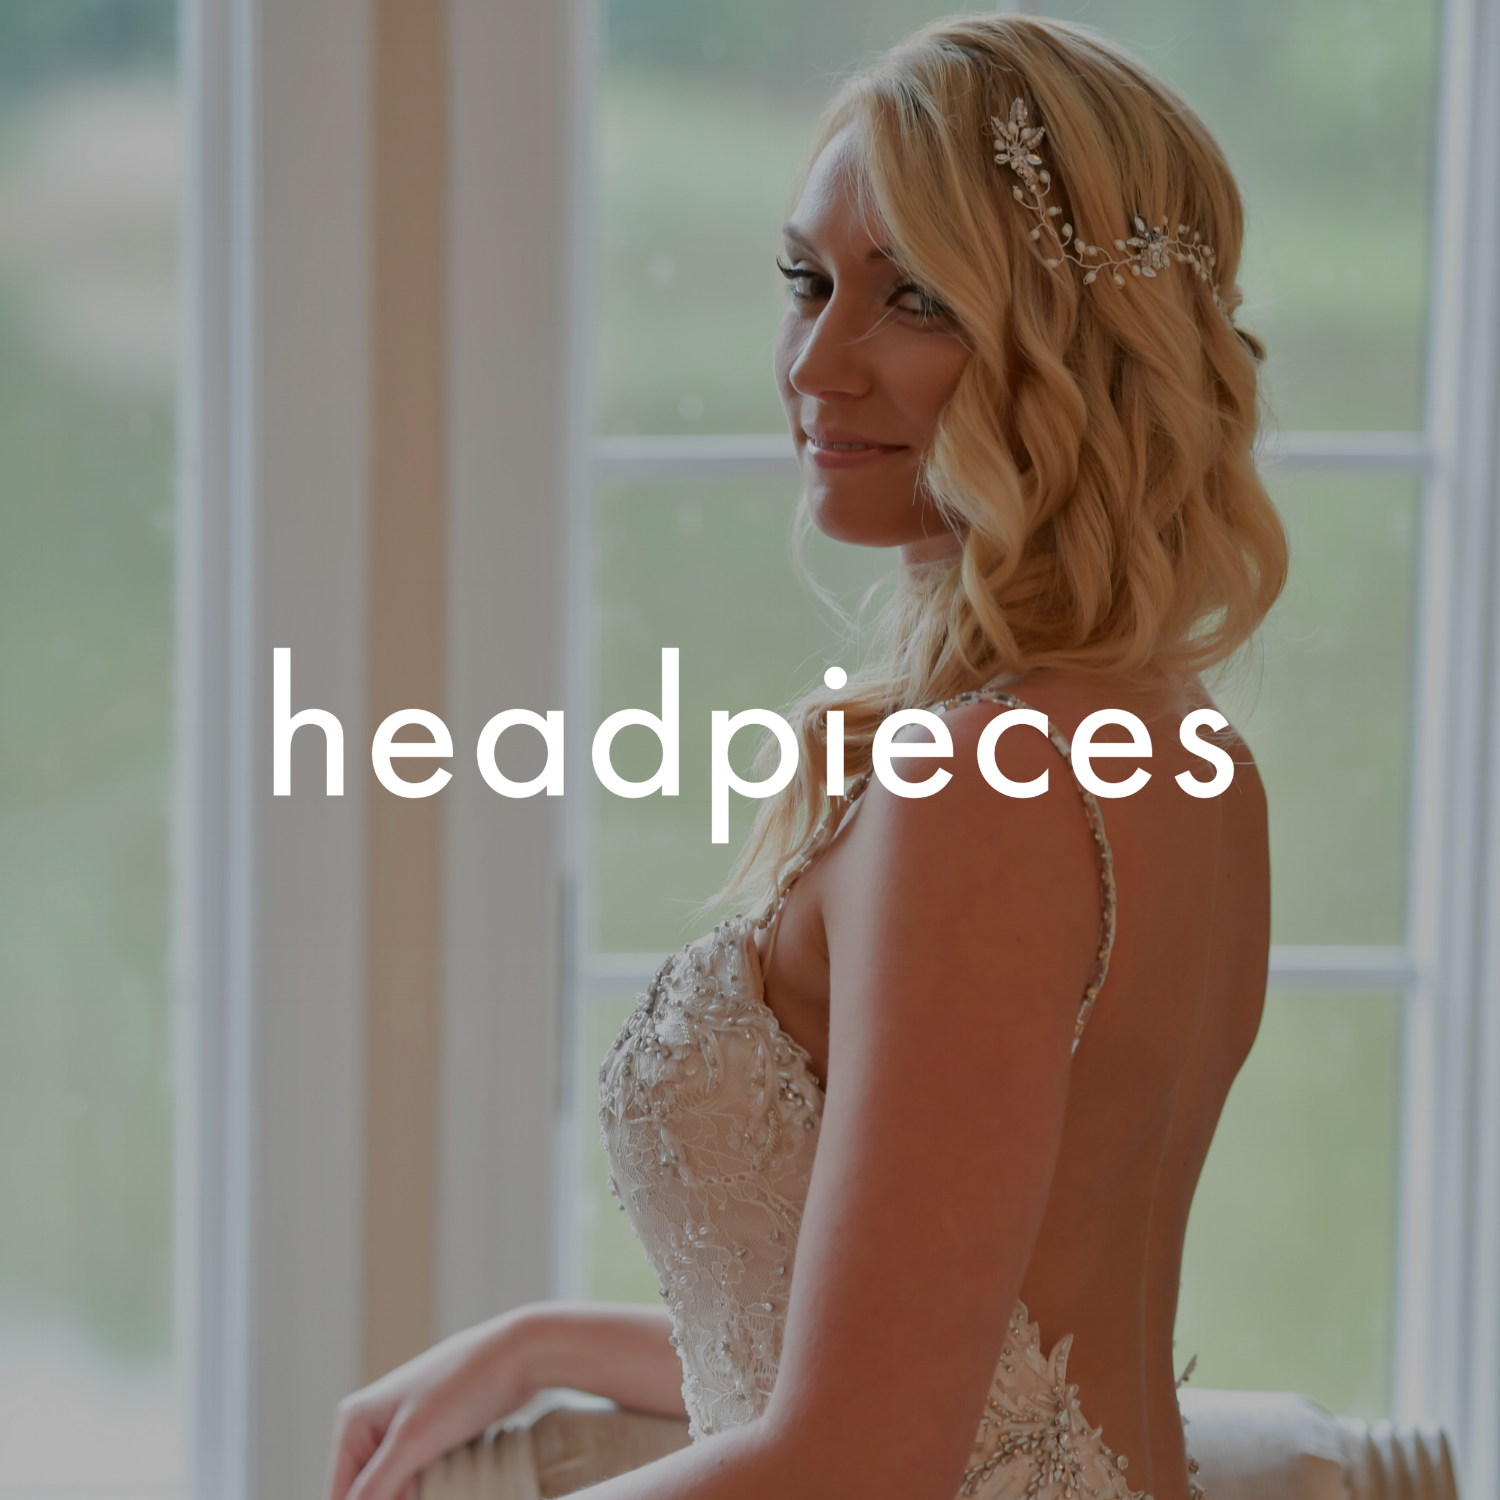 Headpieces1.png